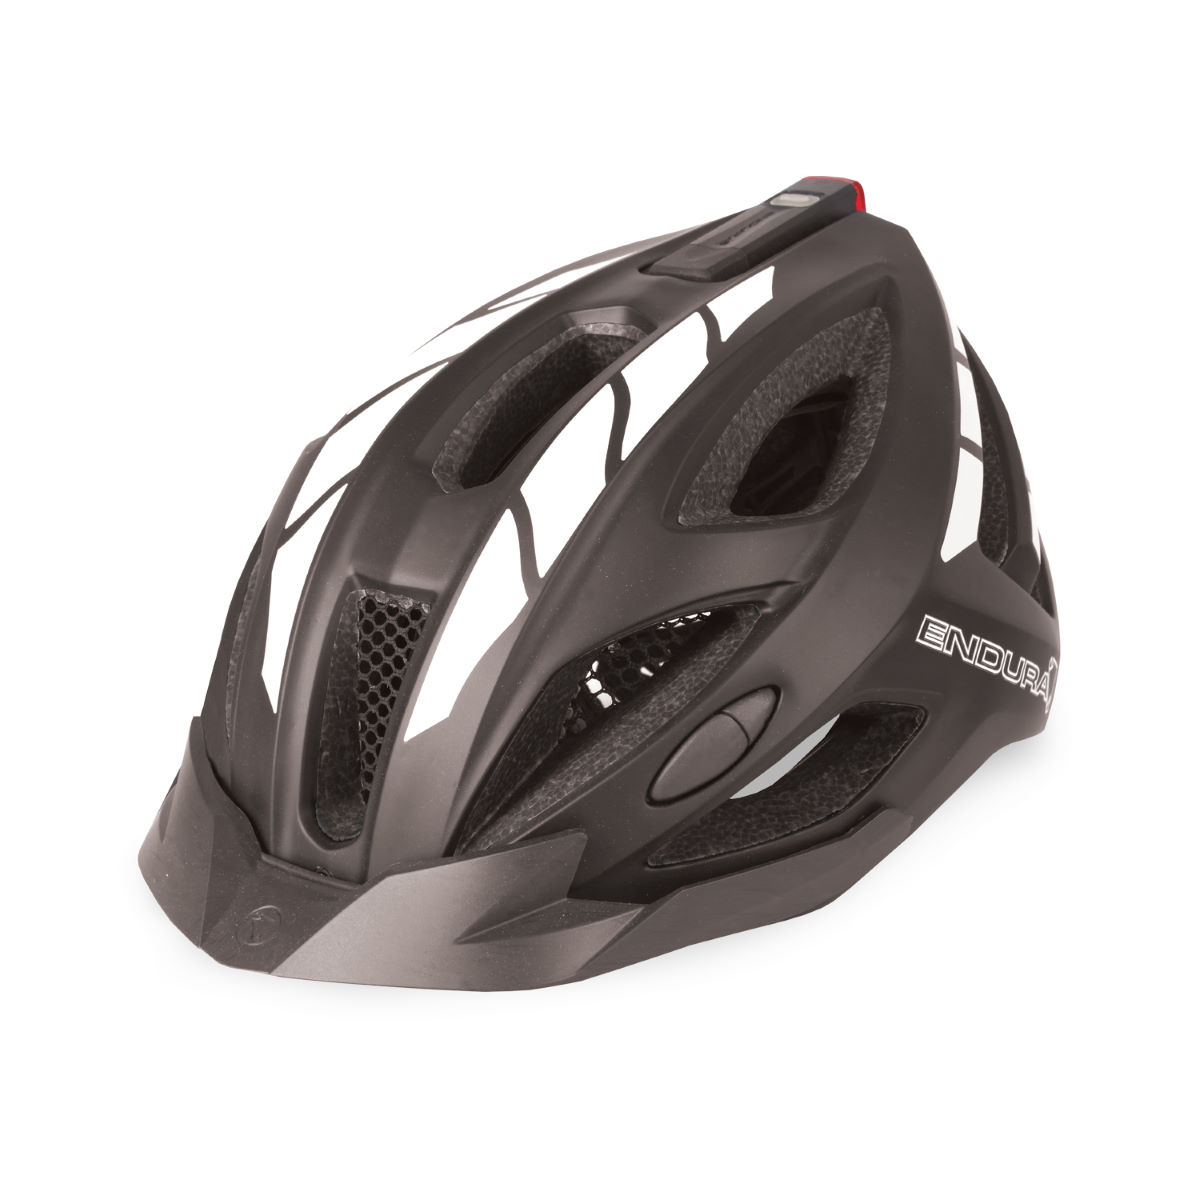 Casque Endura Luminite - M/L Noir Casques